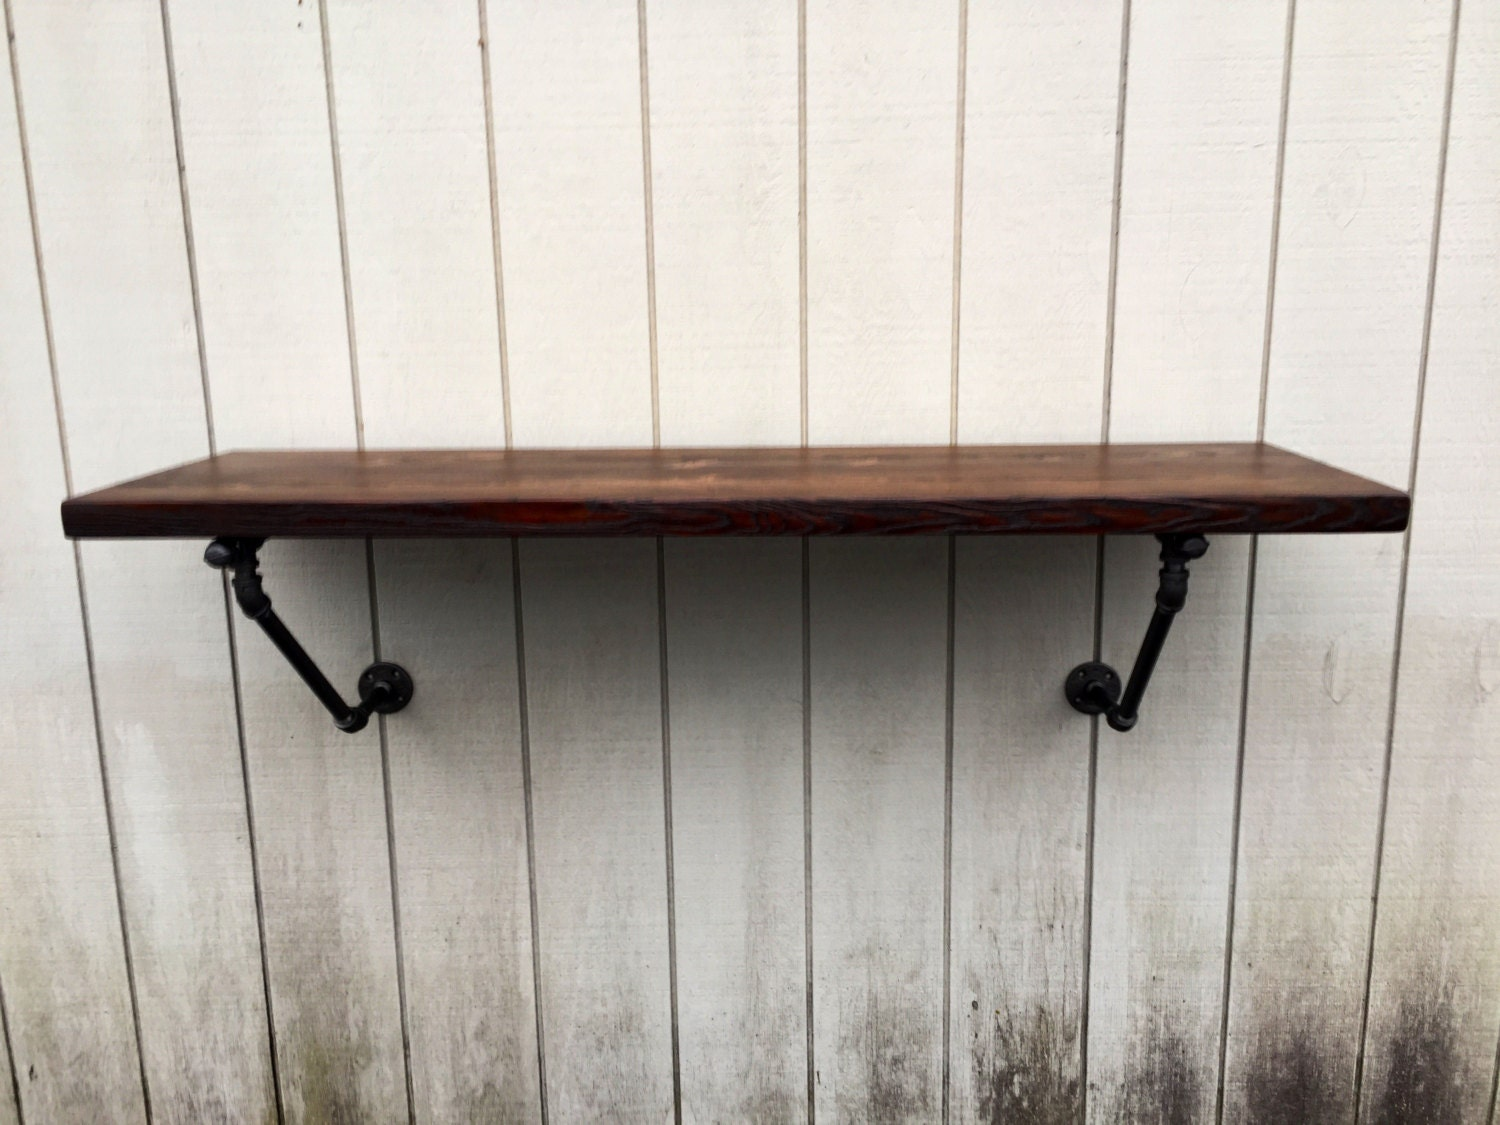 The Lodge Mantel Wall Mounted Bar Table Shelf Reclaimed Wood